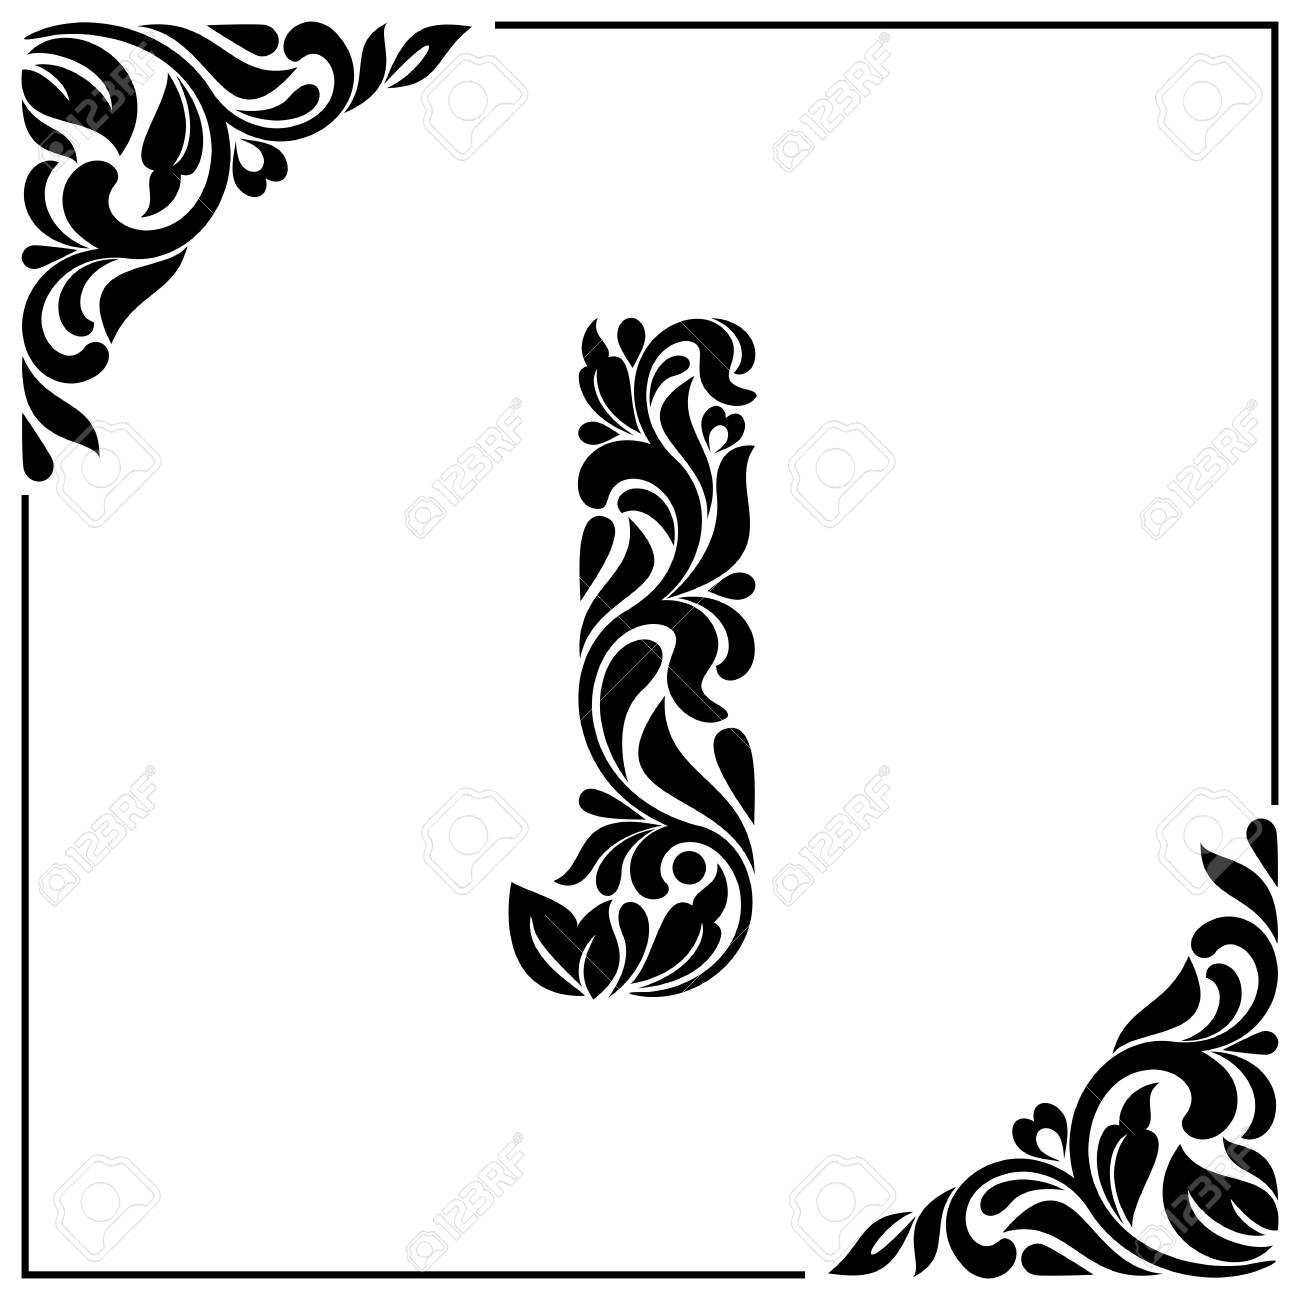 The Letter J Decorative Font With Swirls And Floral Elements Vintage Style Stock Vector